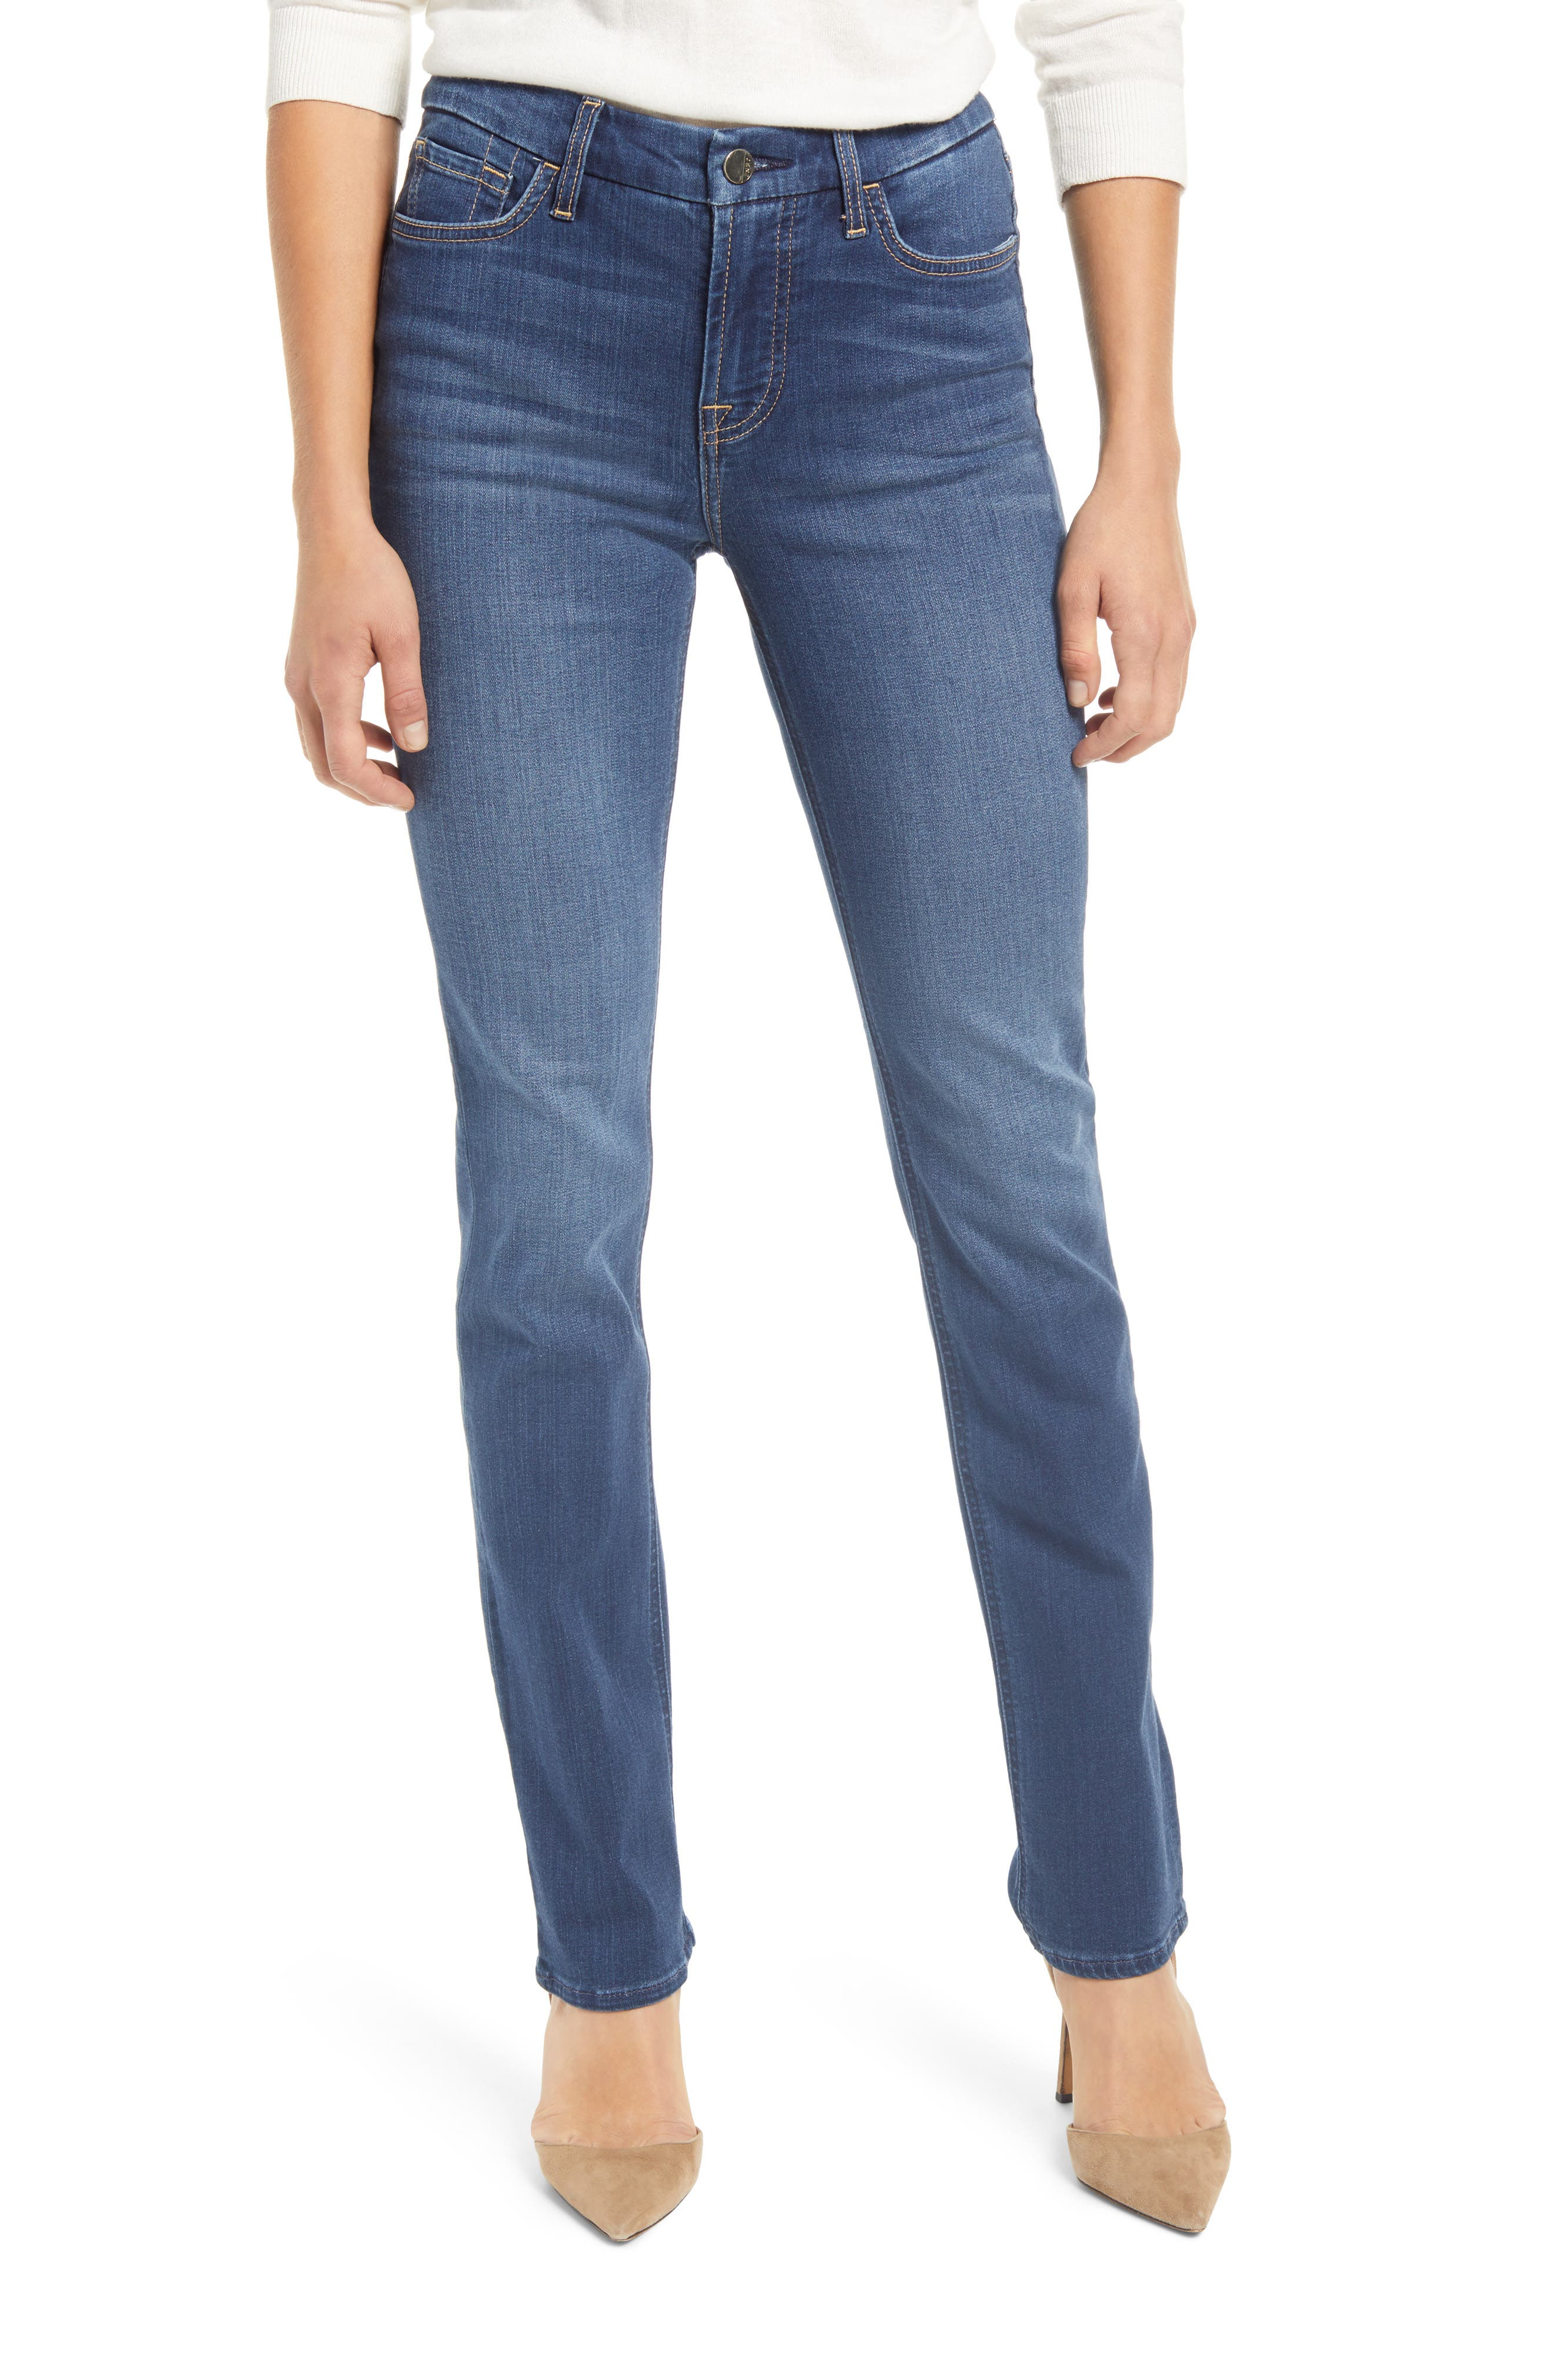 By 7 For All Mankind High Waist Slim Straight Leg Jeans